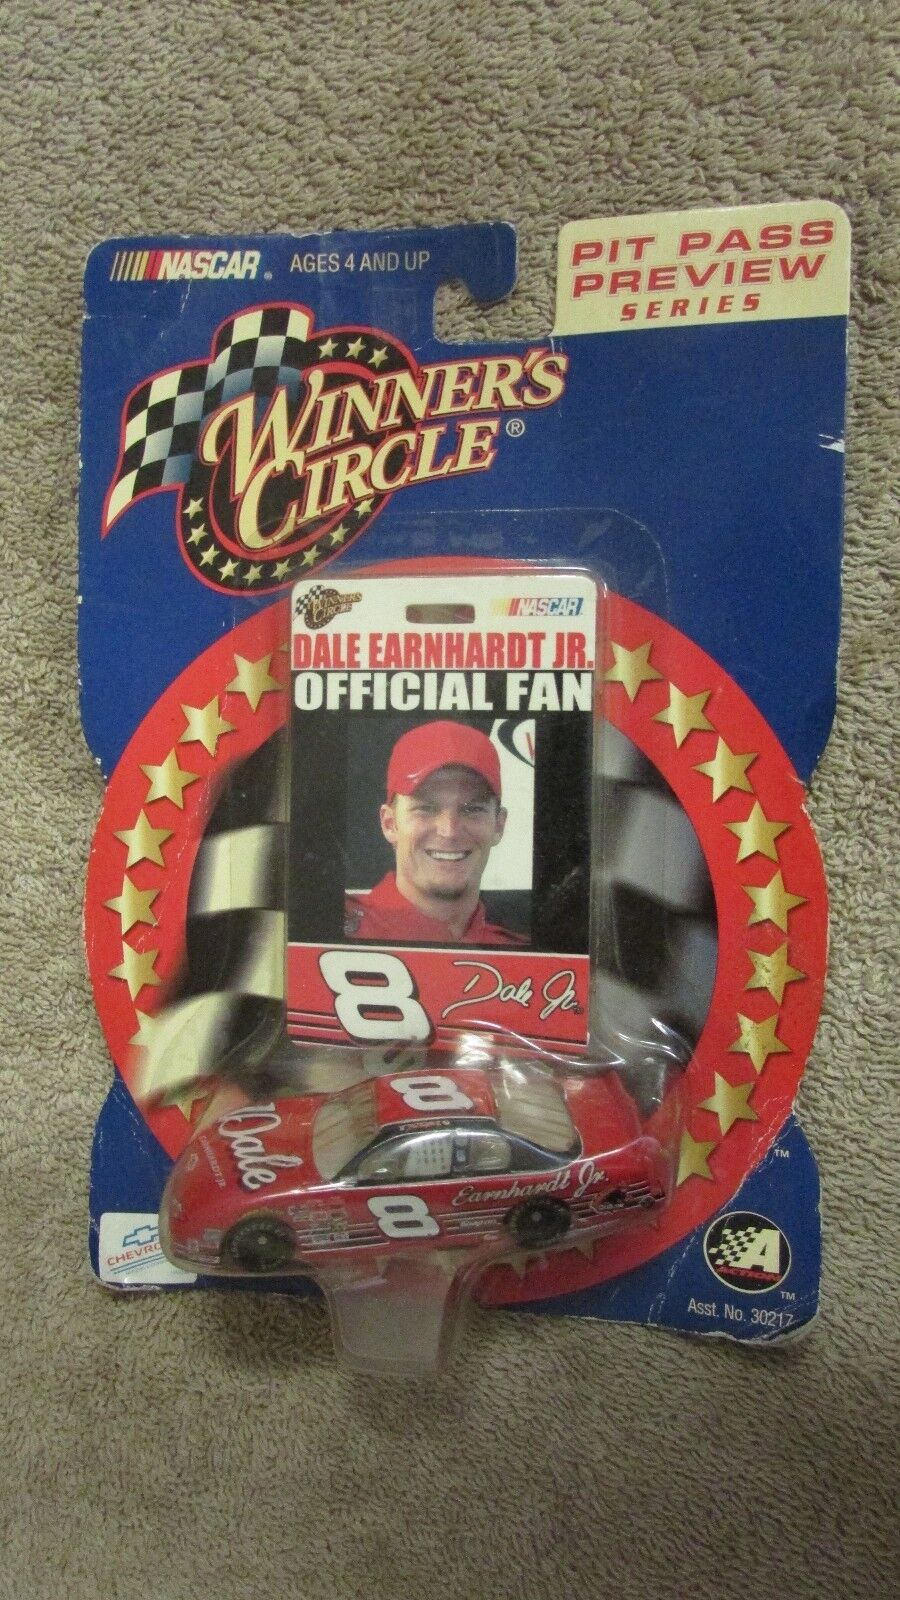 Nascar Winner's Circle Pit Pass Preview Series Dale Earnhardt Jr. Car   (CA 11)